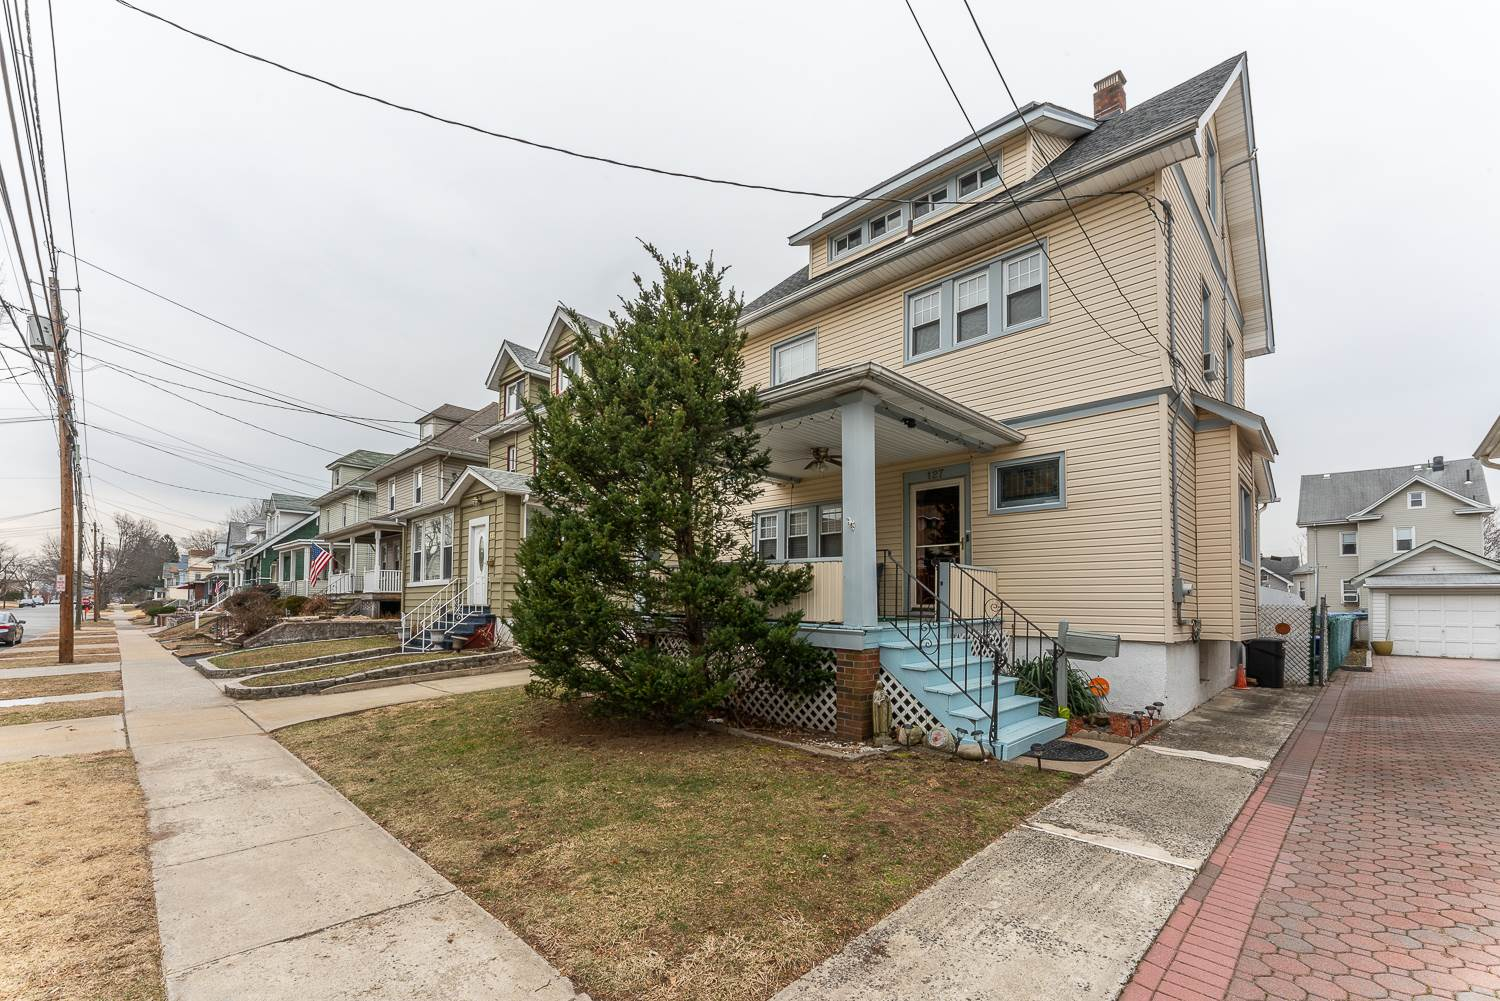 127 De Mott Ave, Clifton, NJ 07011